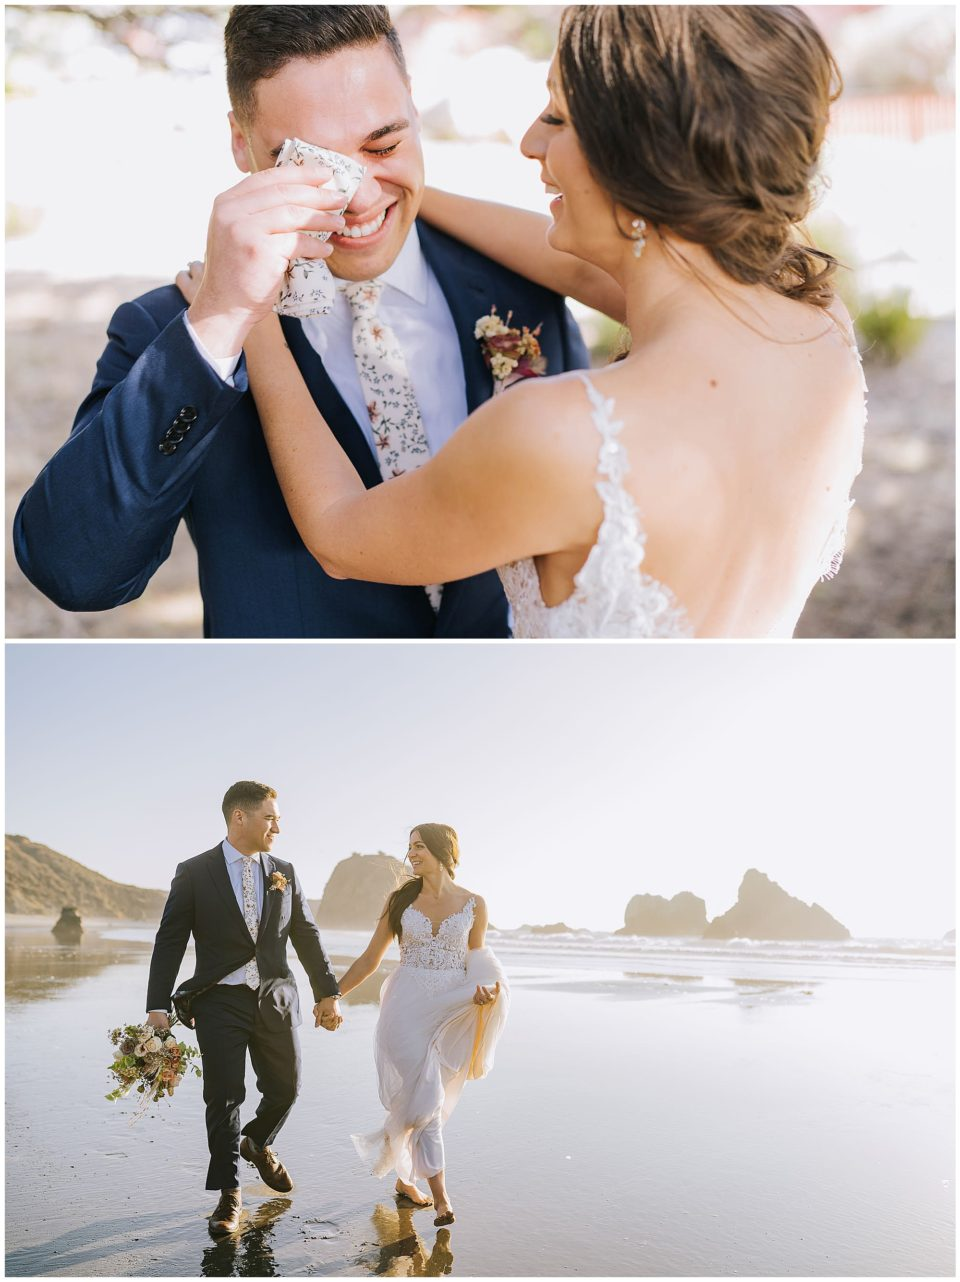 micro wedding on California beach photographed by Elevate Photography